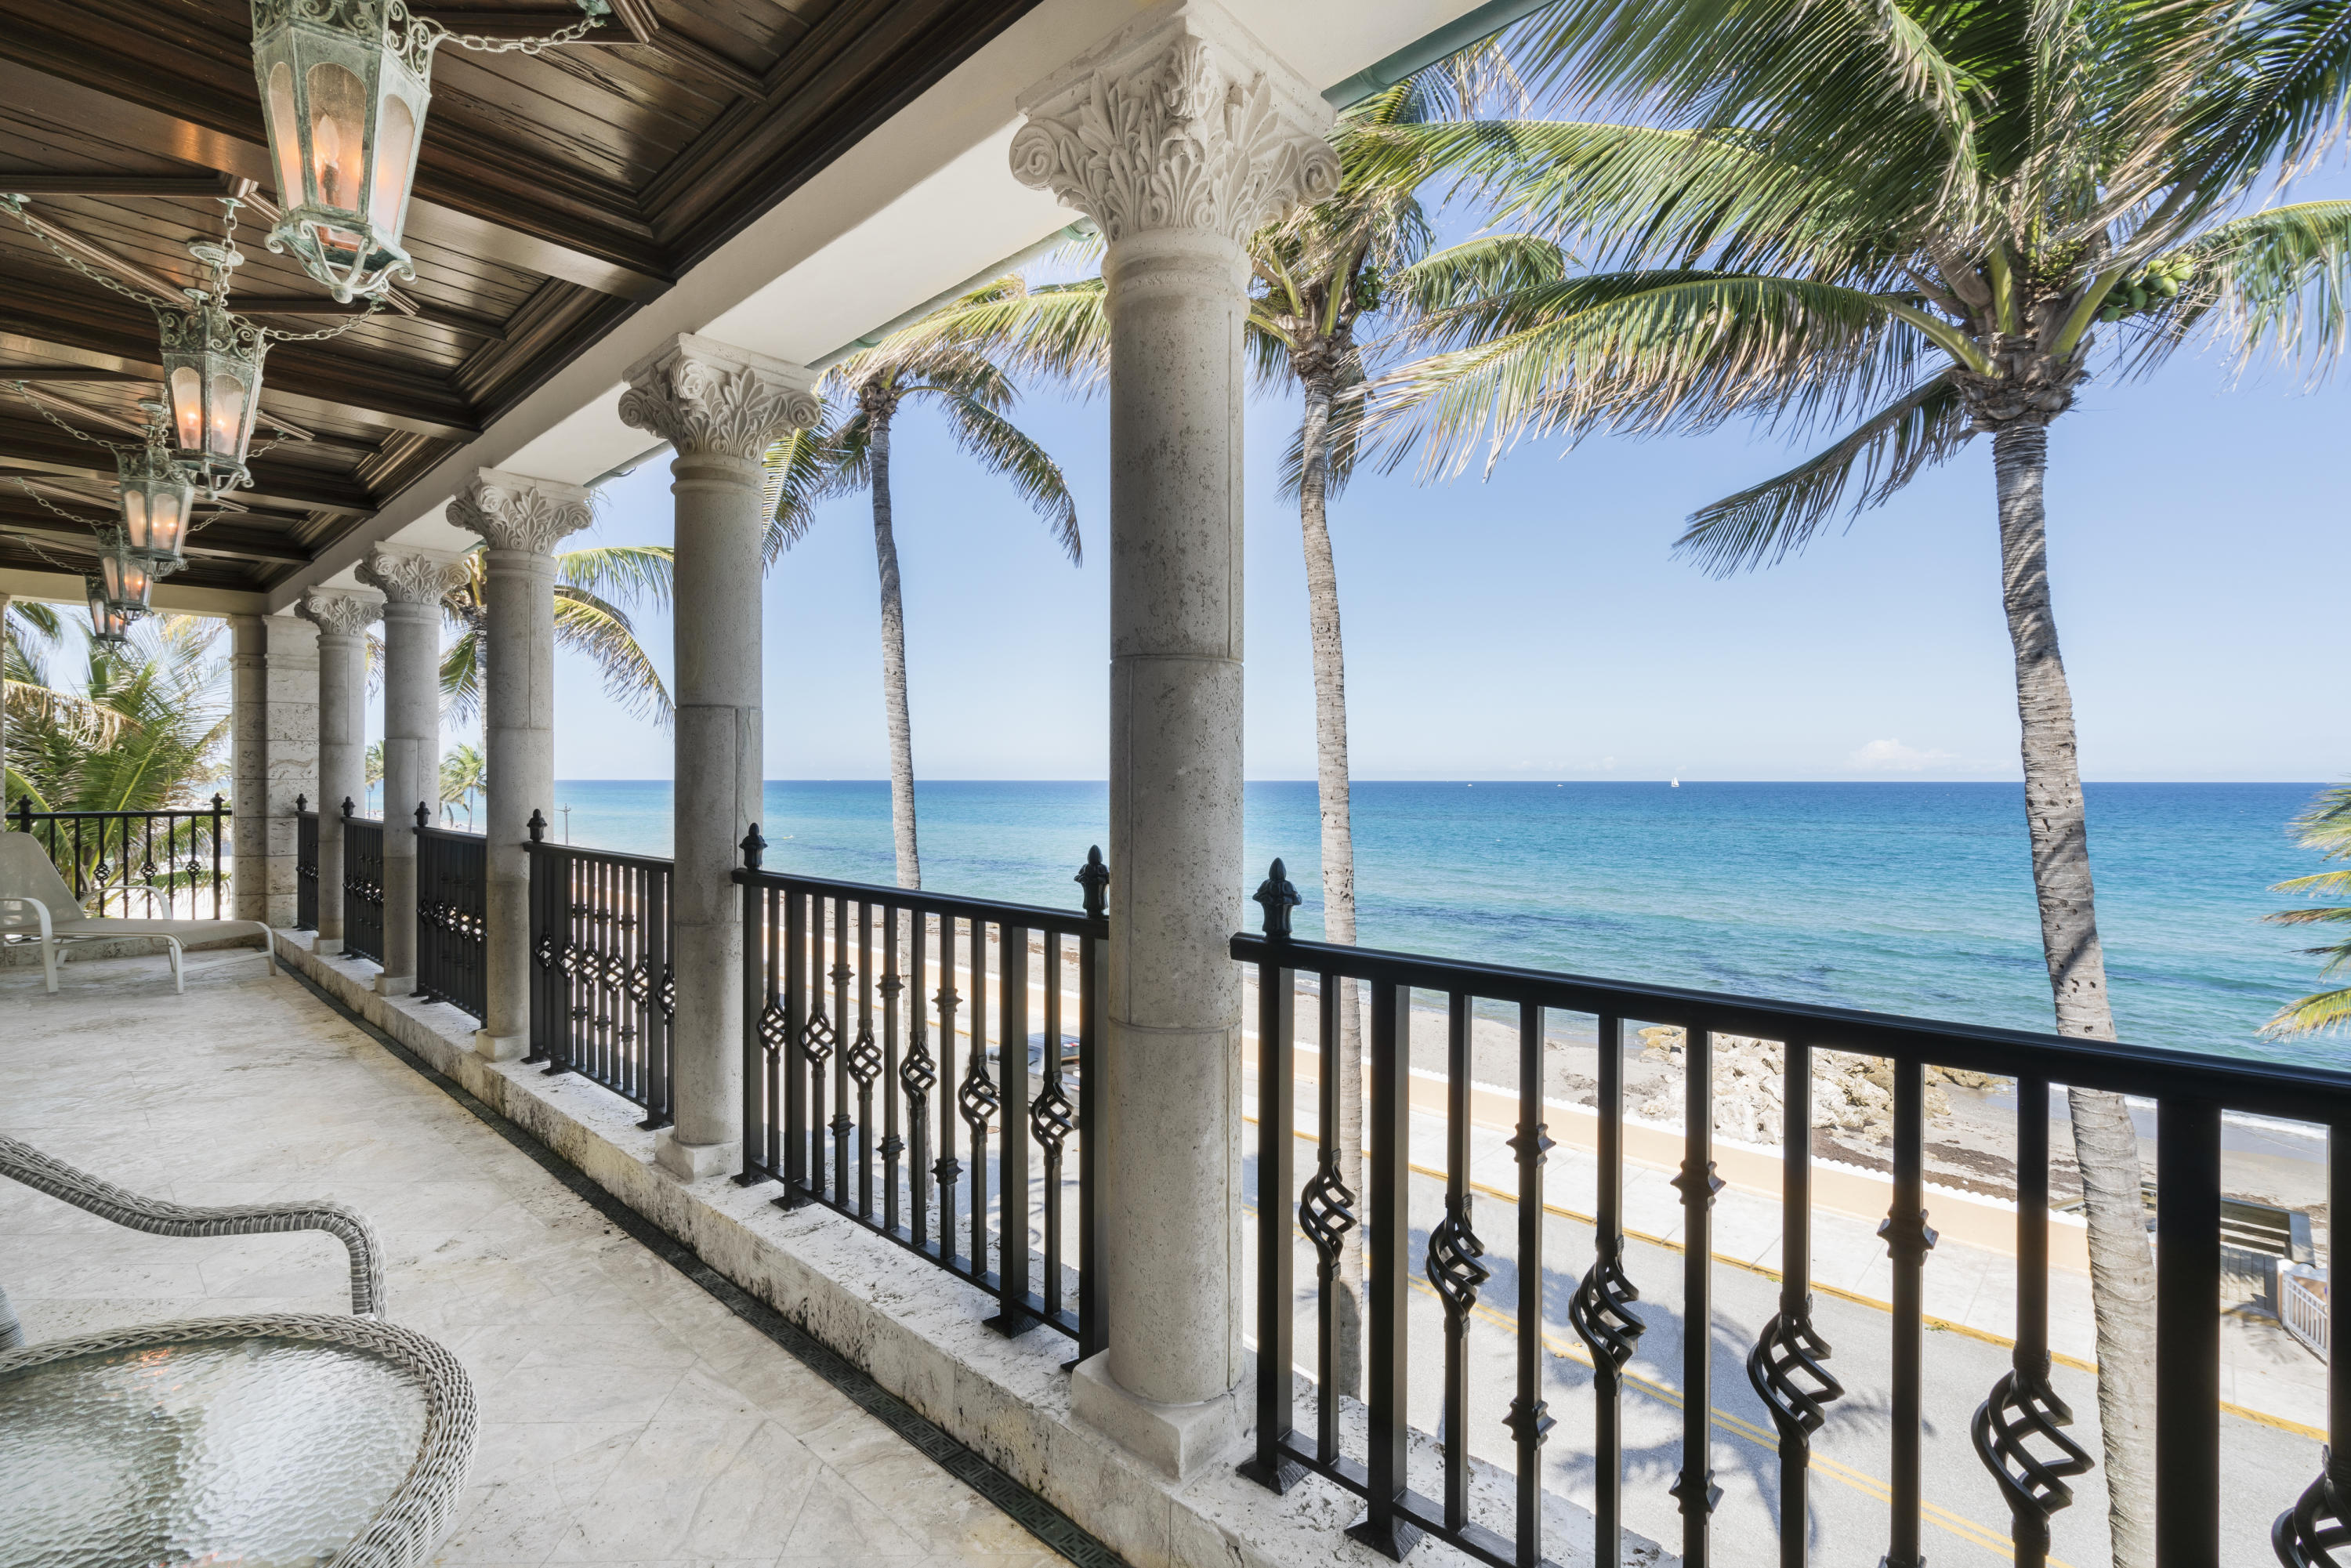 New Home for sale at 104 Gulfstream Road in Palm Beach